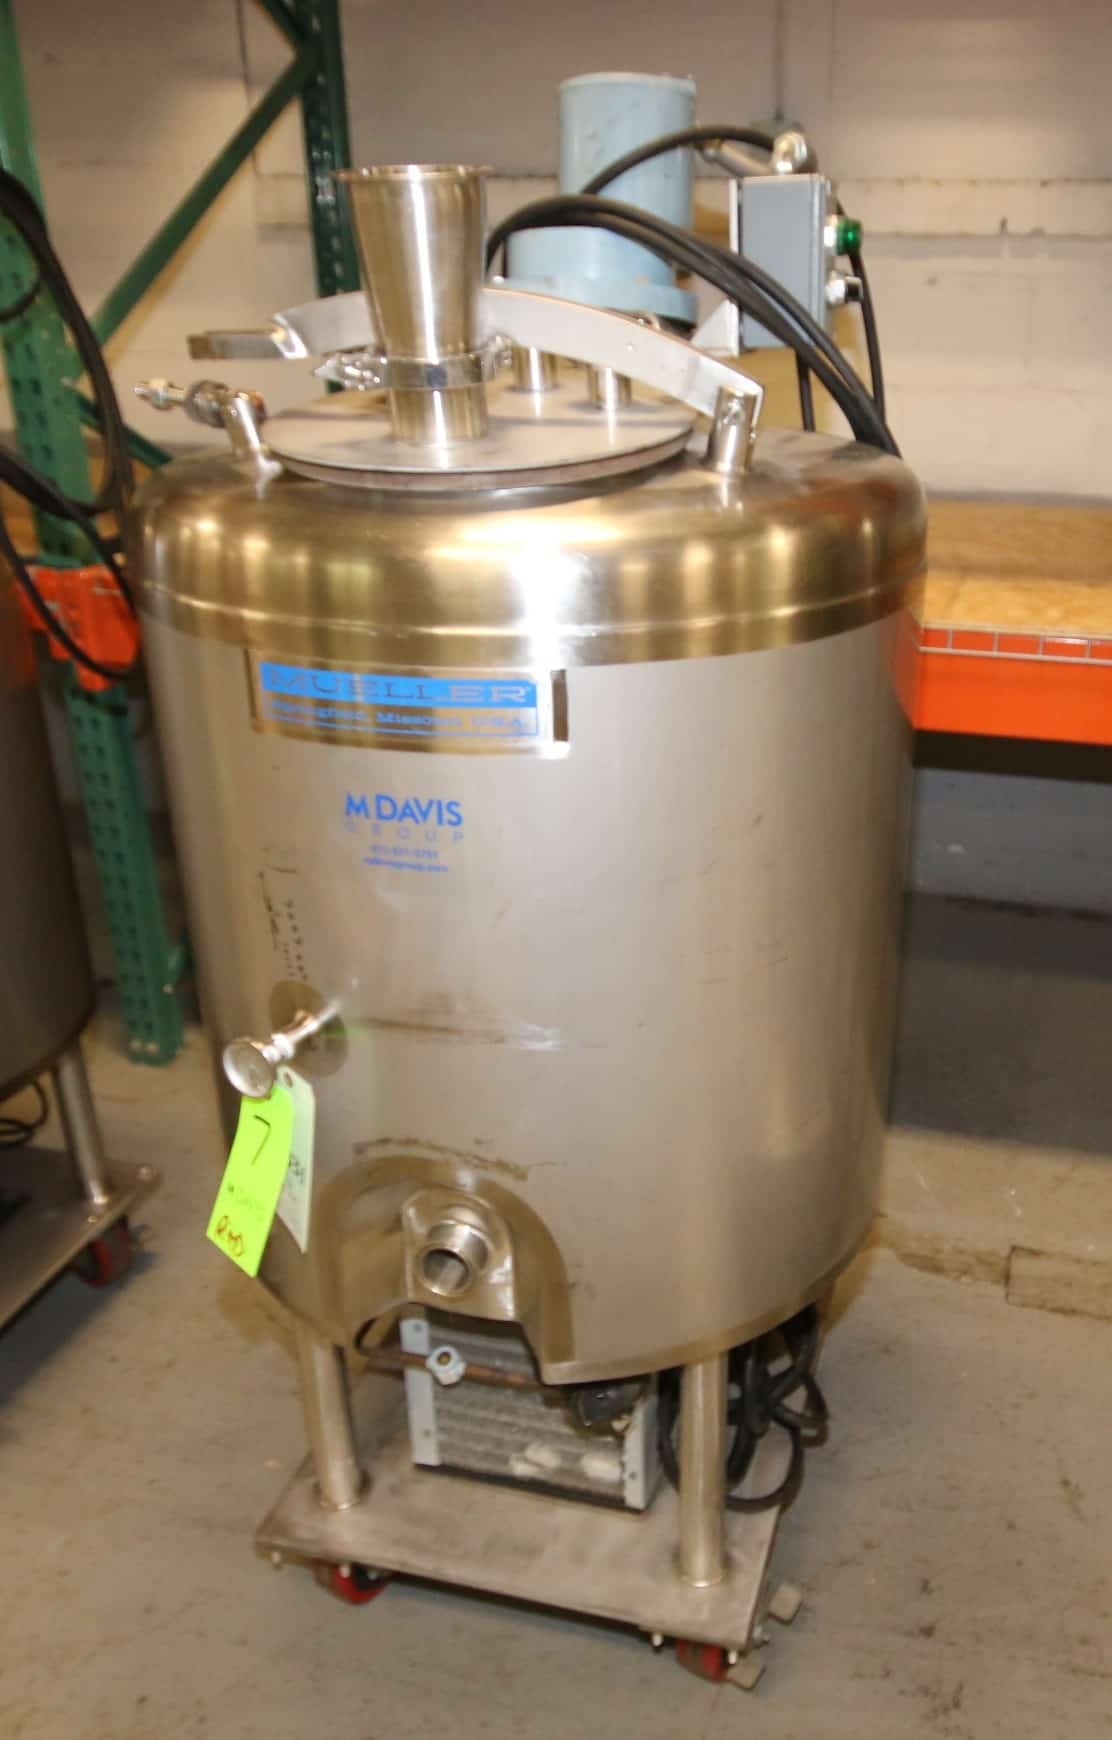 (2) Mueller Aprox. 50 Gal. Dome Top S/S Refrigerated Portable Mix Tanks, Model D, S/N F42170-2, with Hinged Lids, 1/6 hp @ 1425/1725 RPM, 230V, Includes On-Board Copeland R22 Freon Compressors, Mounted on Casters